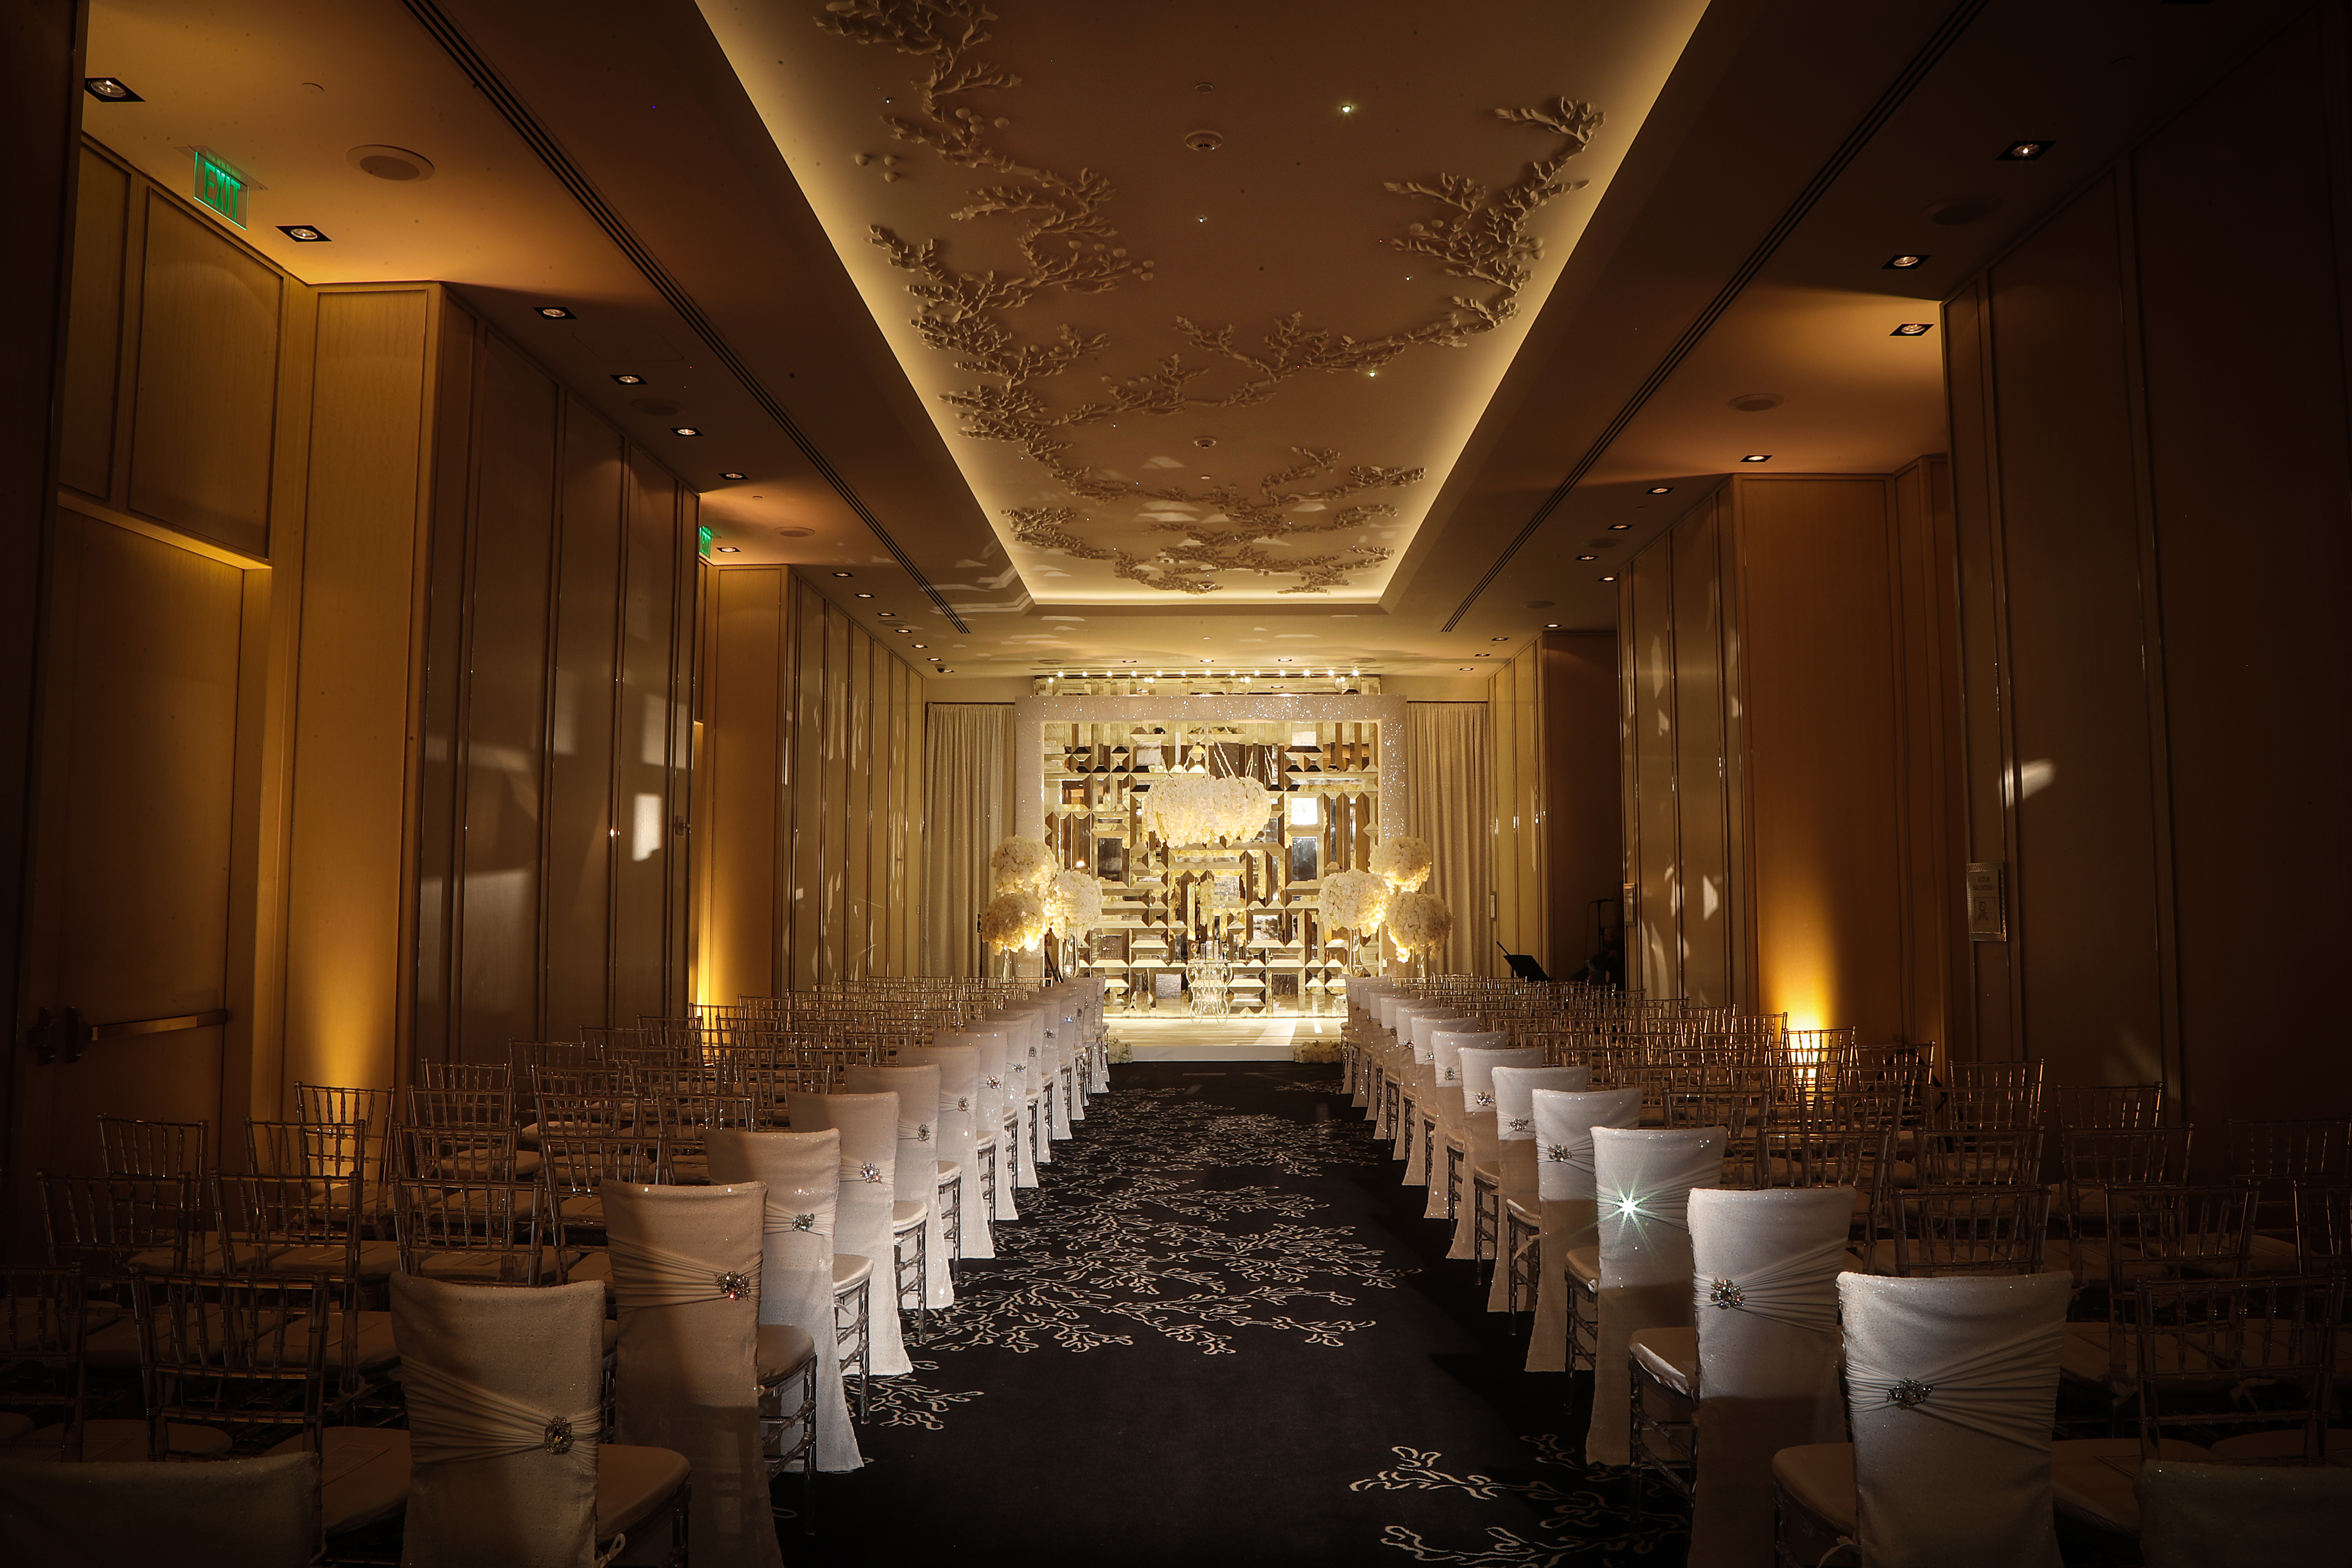 Glamorous Miami Ballroom Wedding - Carrie Zack Events